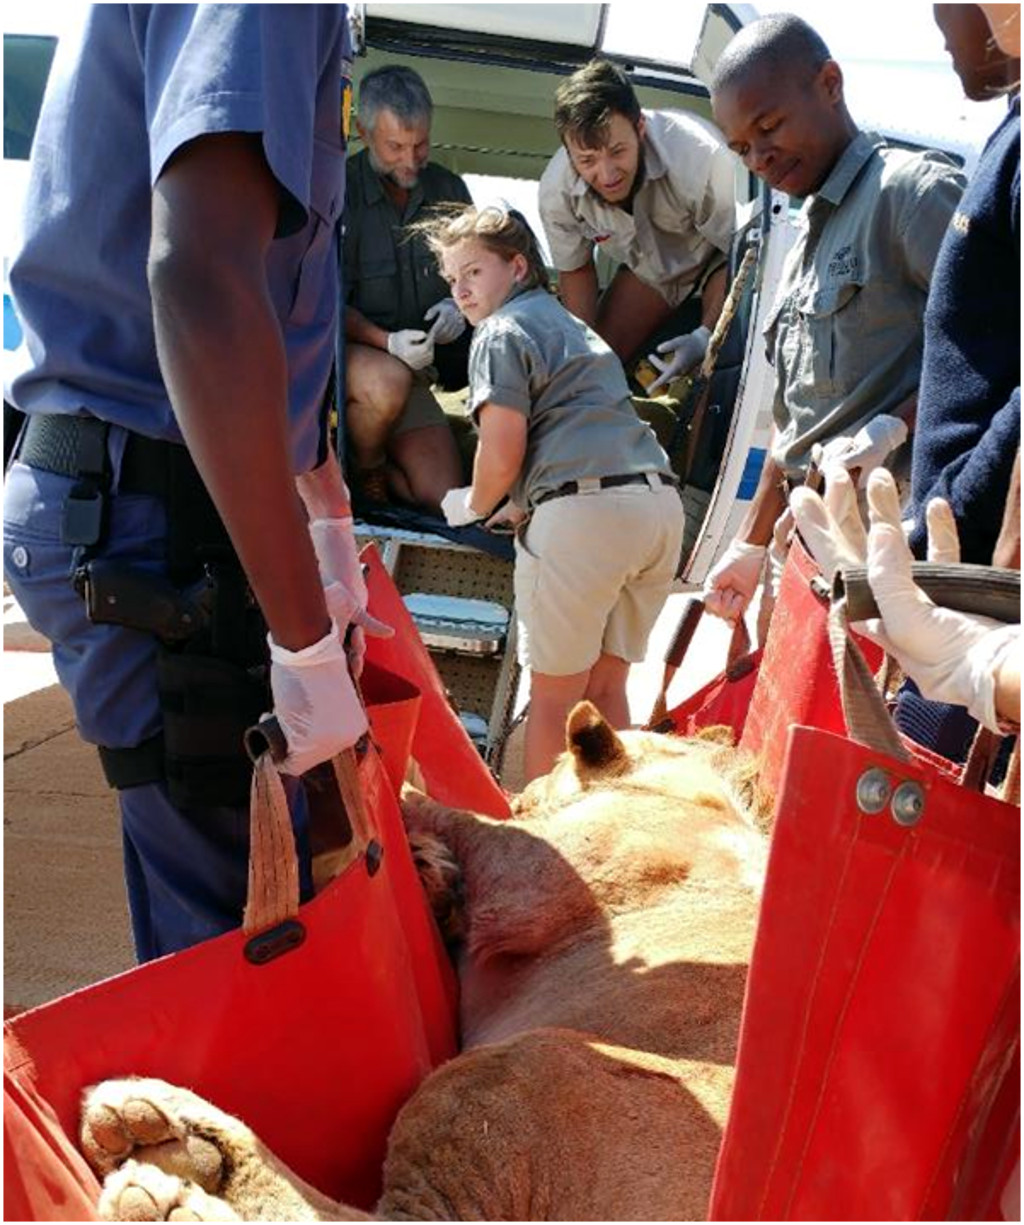 The ground team at Tswalu help to load the sedated lions onto the plane.